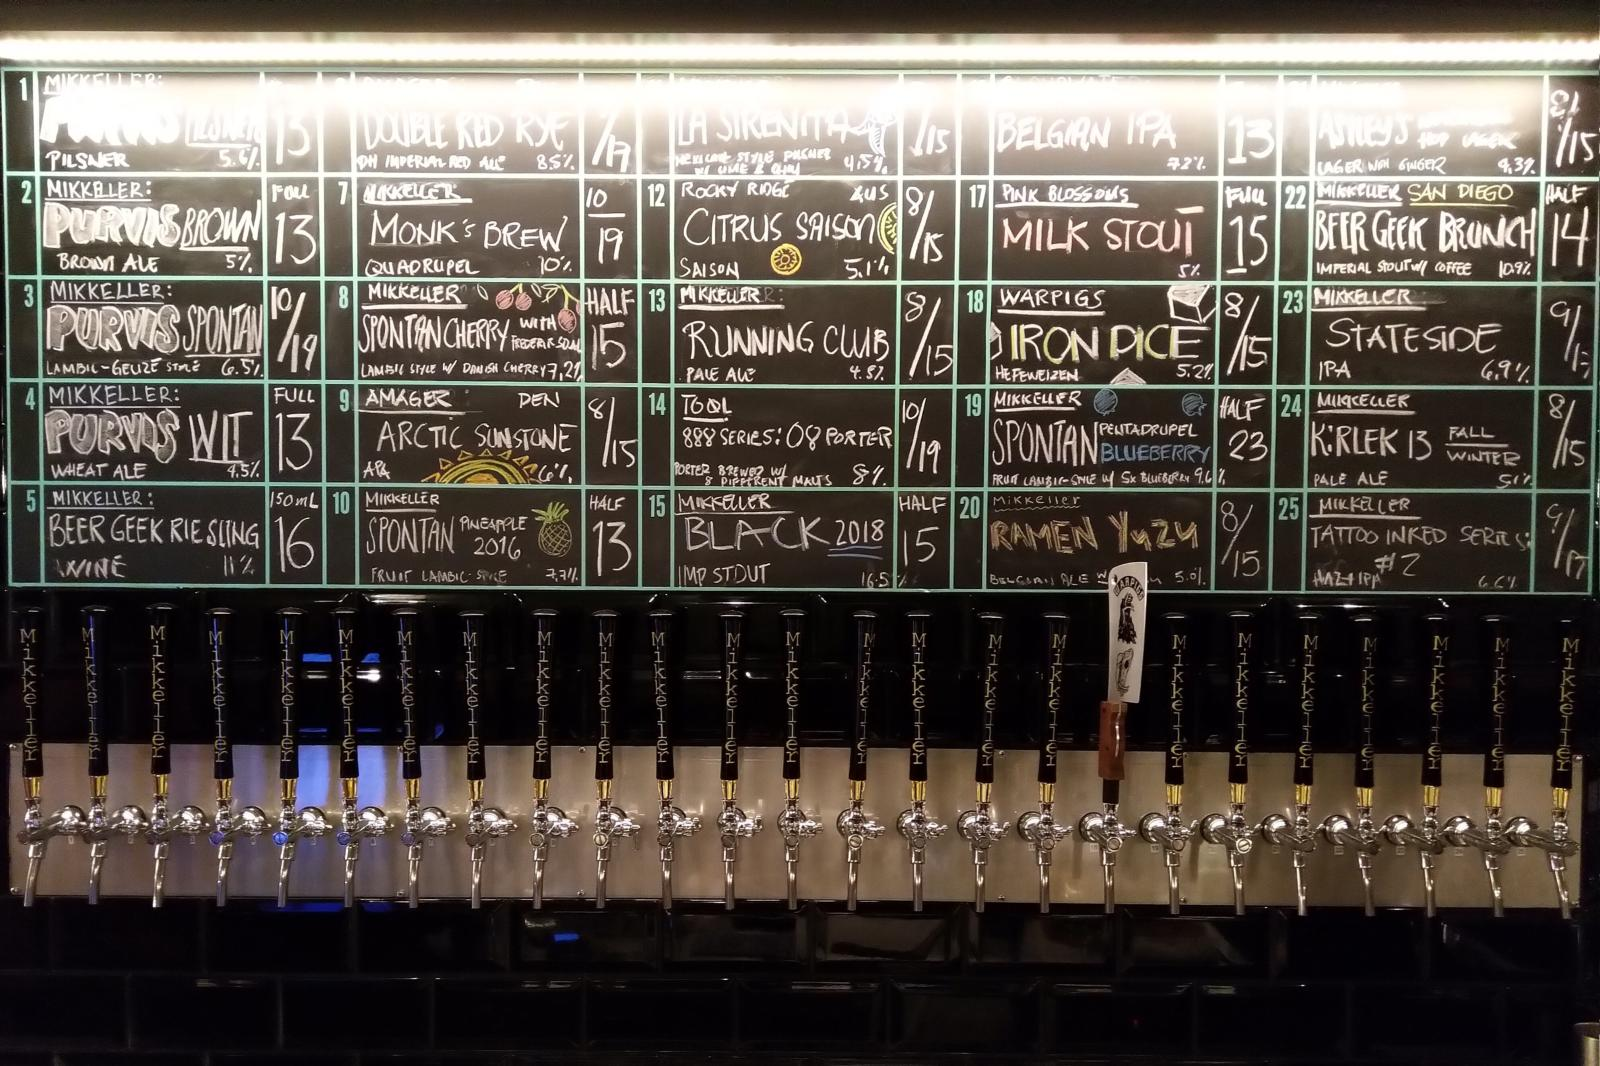 All the Singapore Craft Beer Bars Mapped and Reviewed in One Post